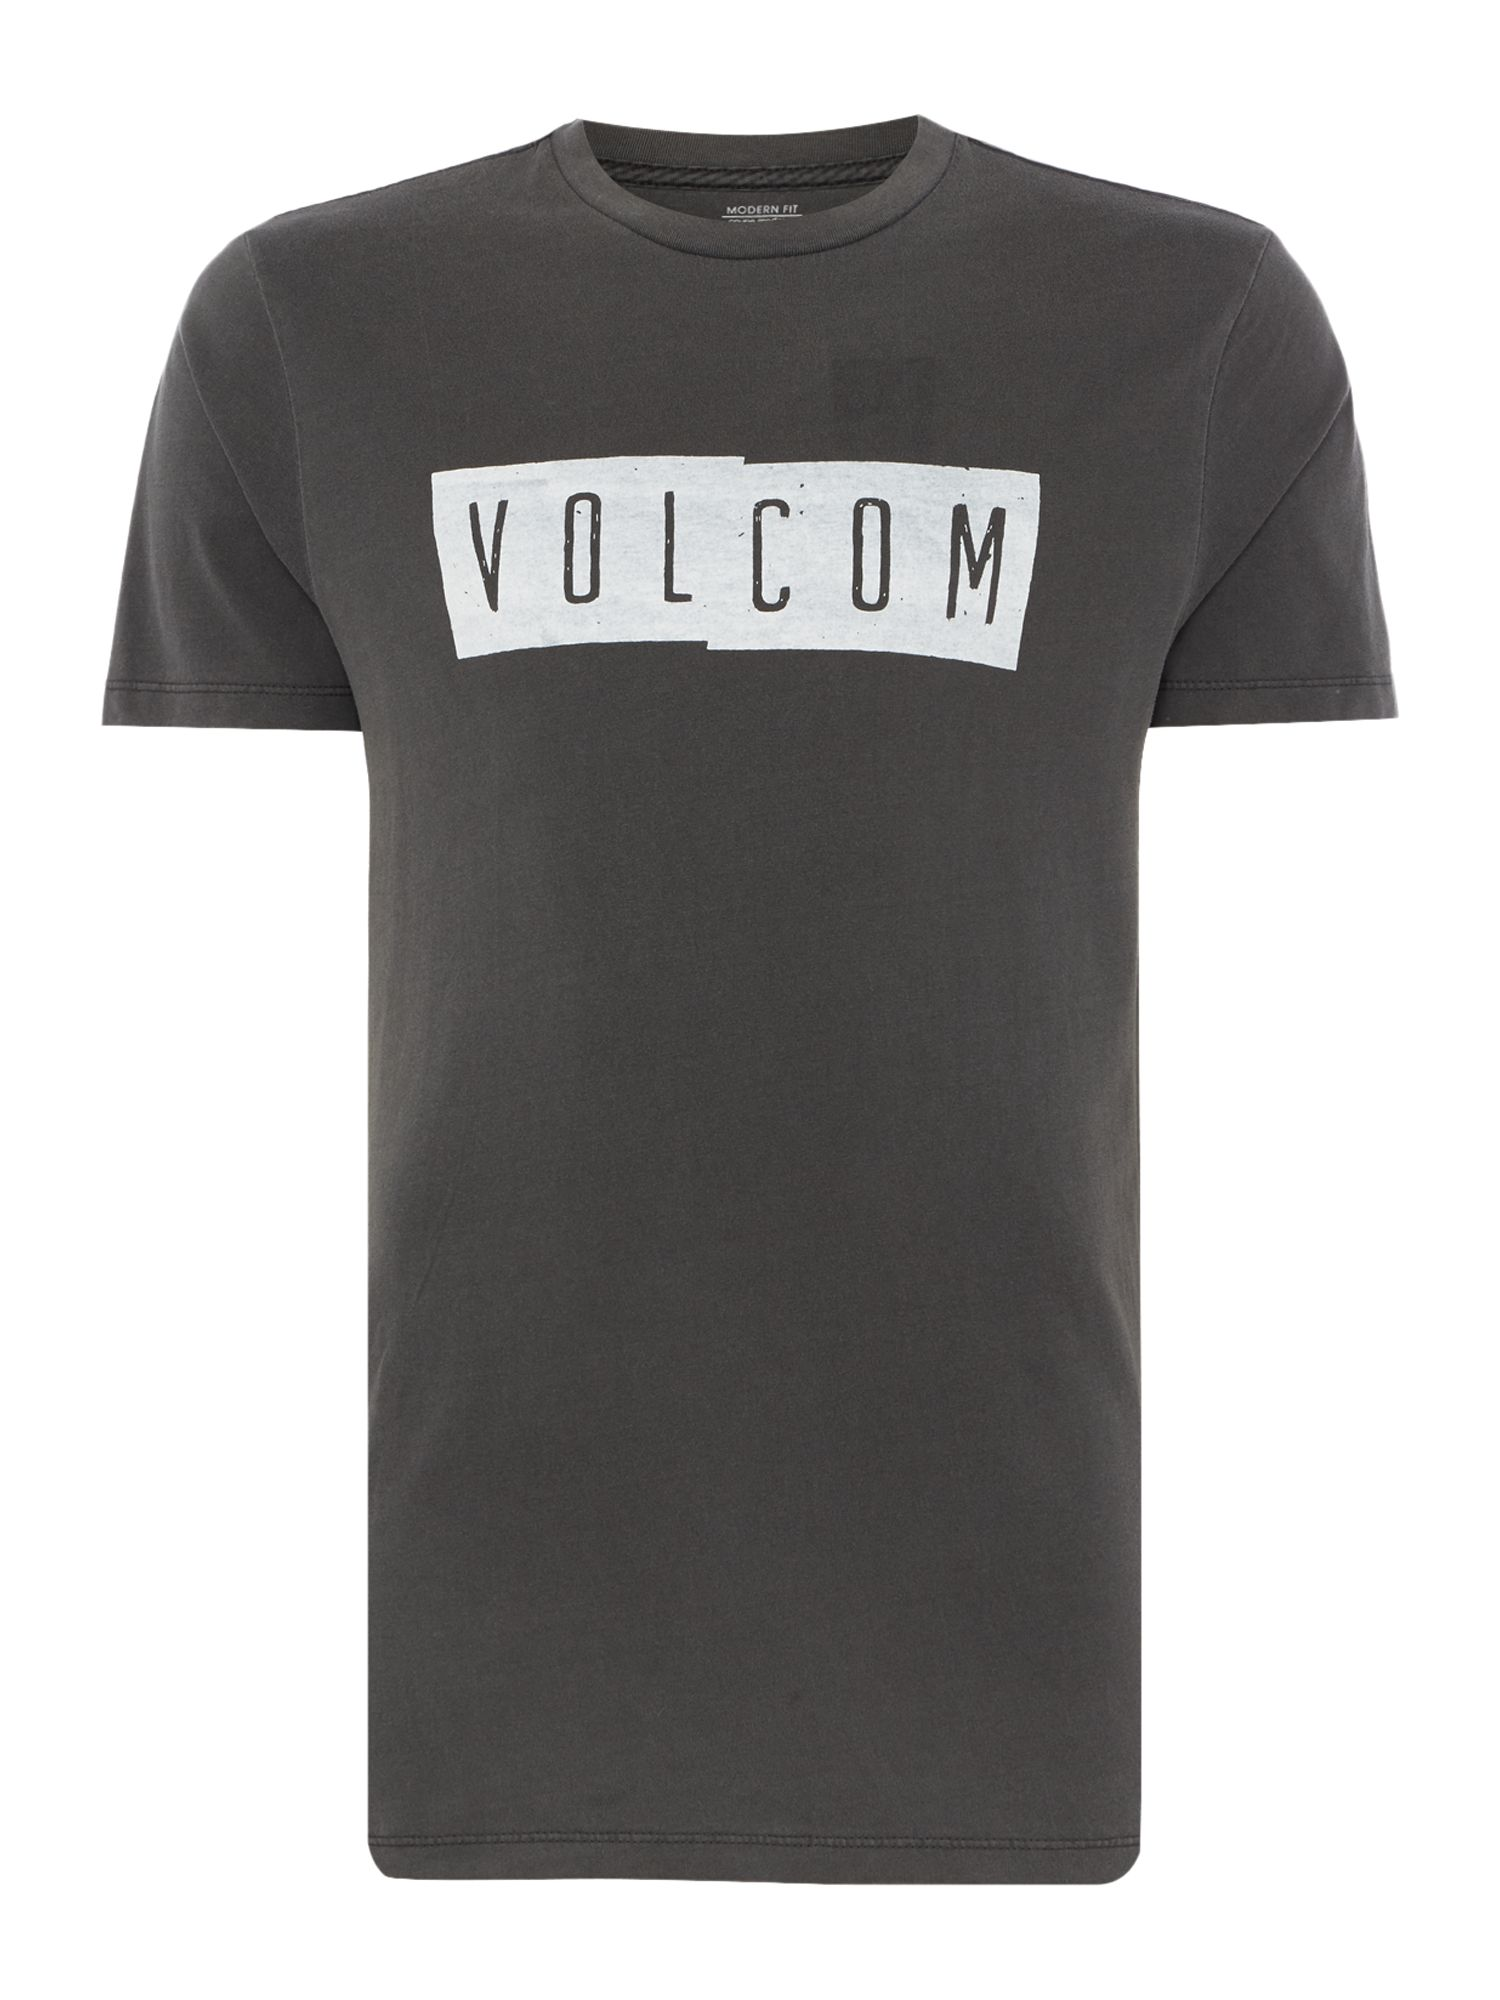 Men's Volcom Modern Fit Premium T-Shirt, Black